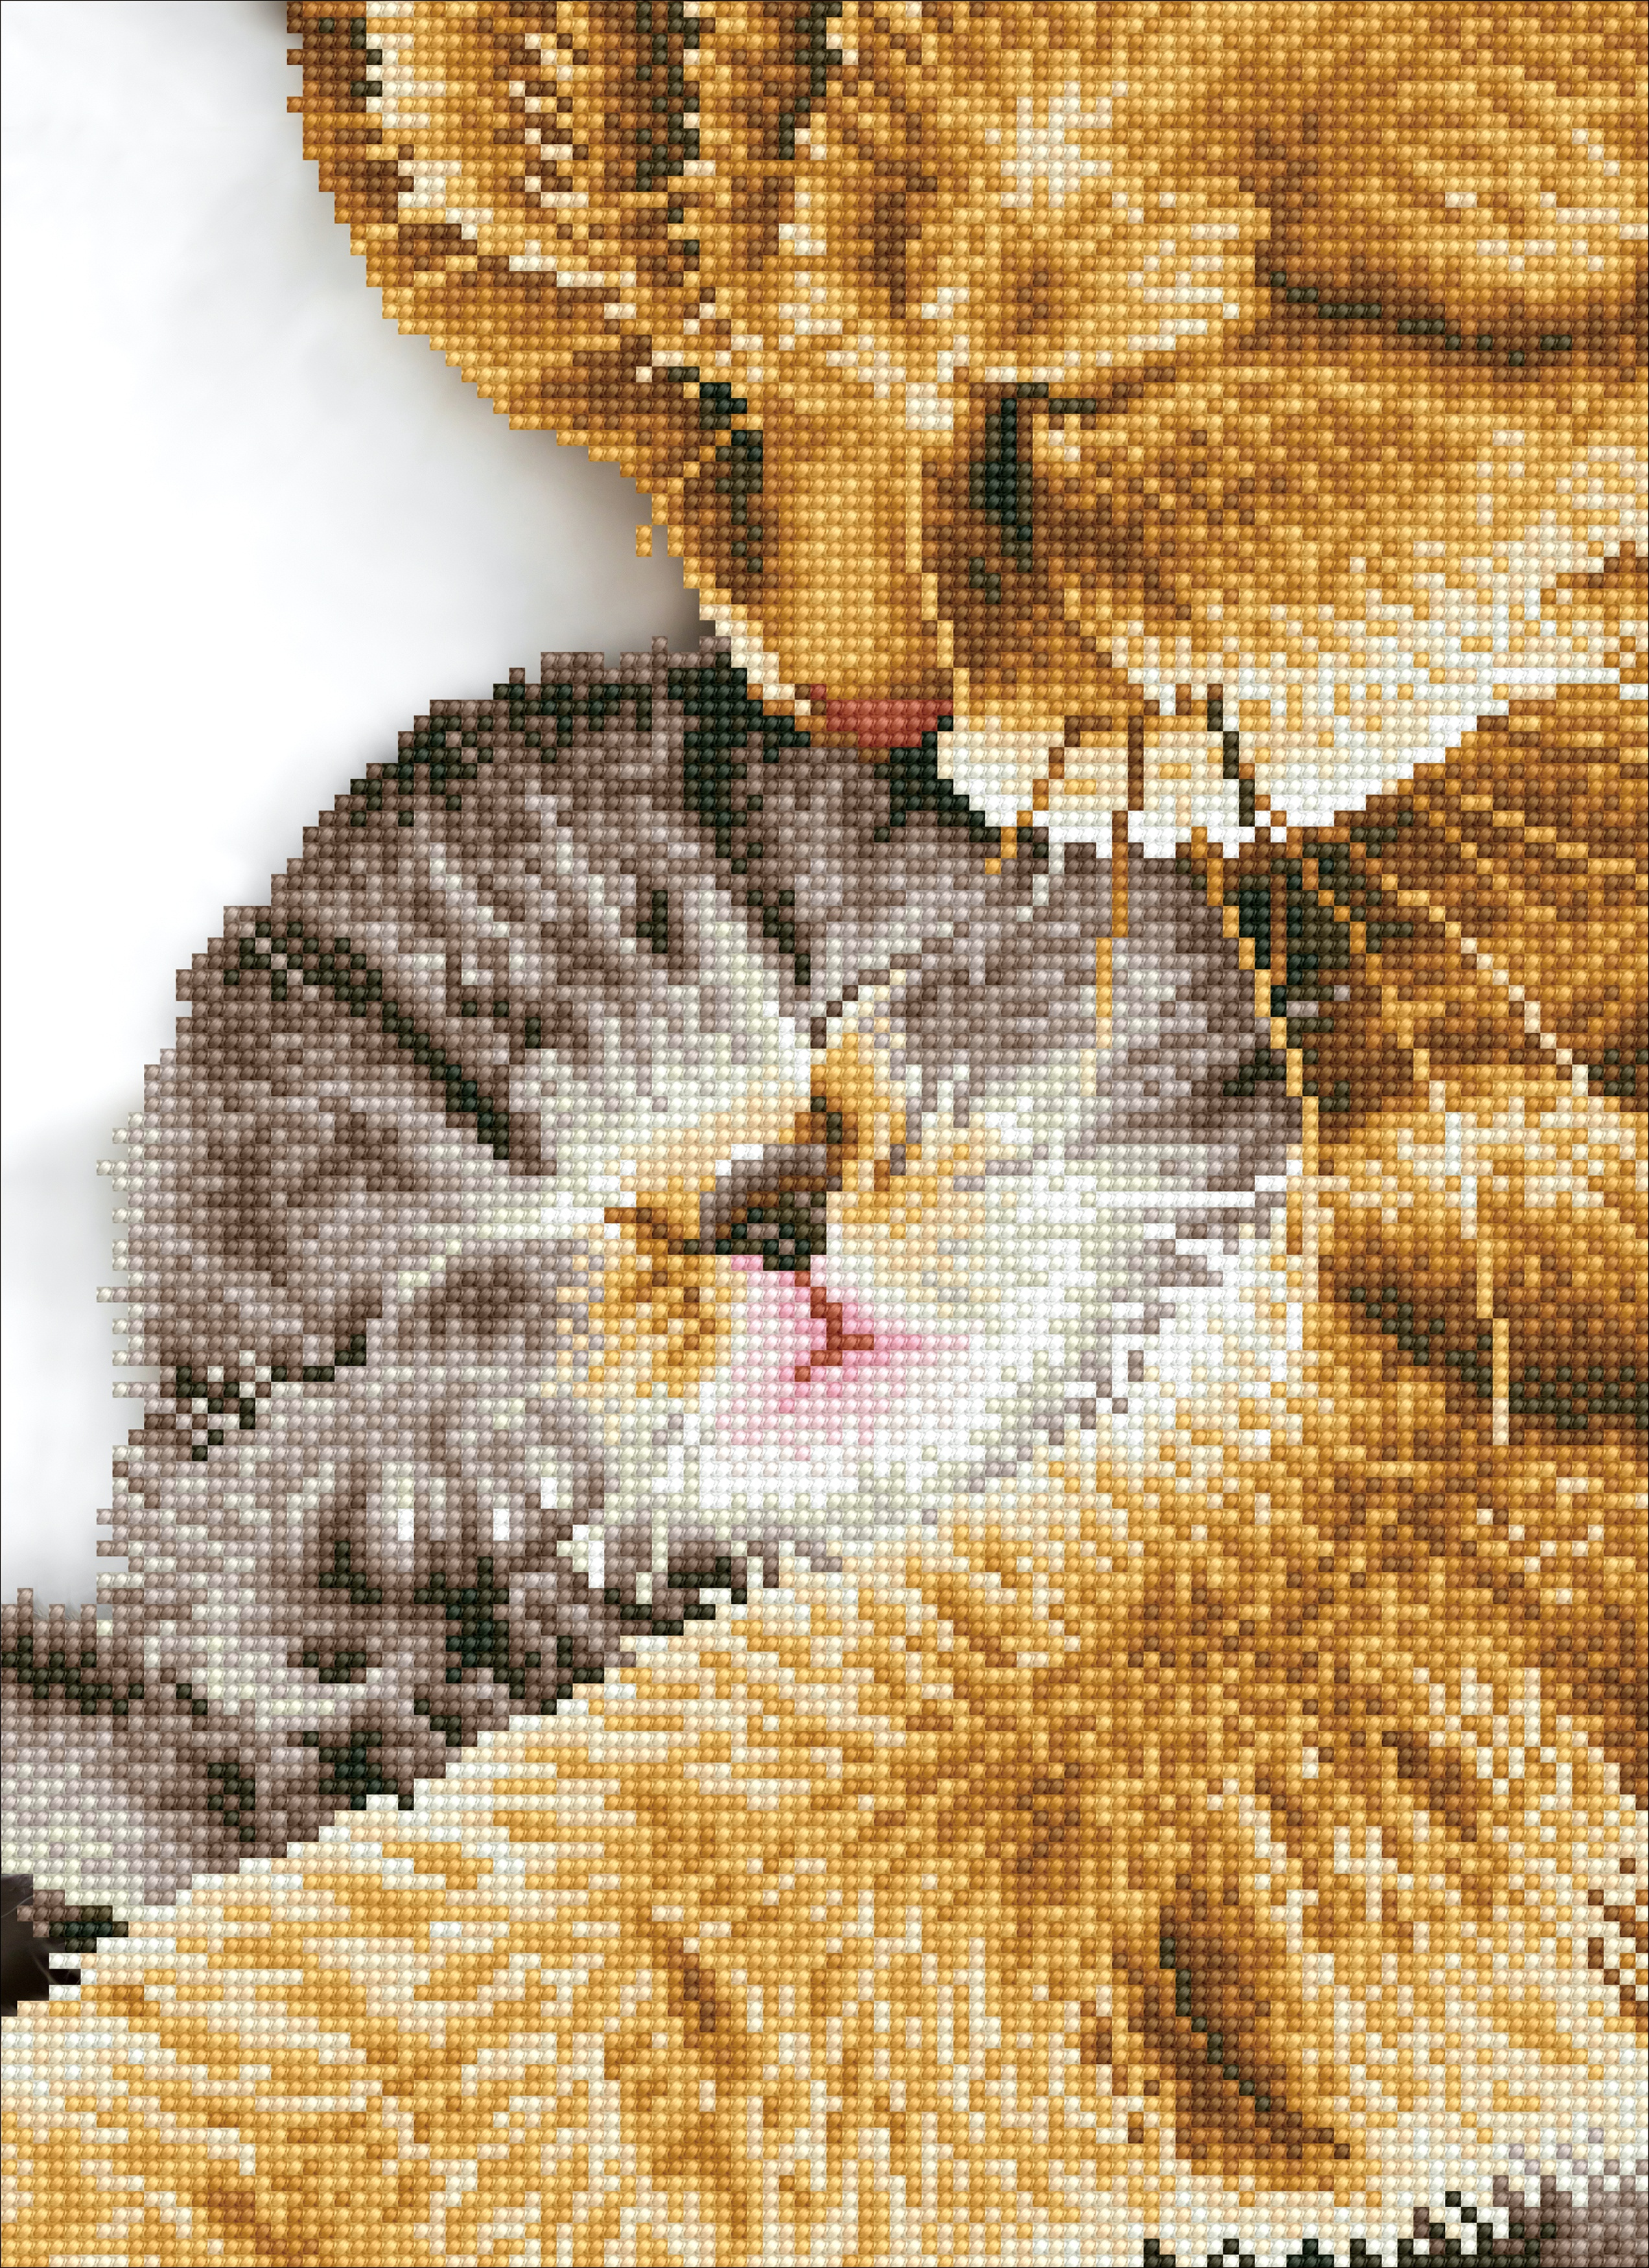 Diamond Dotz Diamond Embroidery Facet Art Kit 11.8X16-Tender Moment